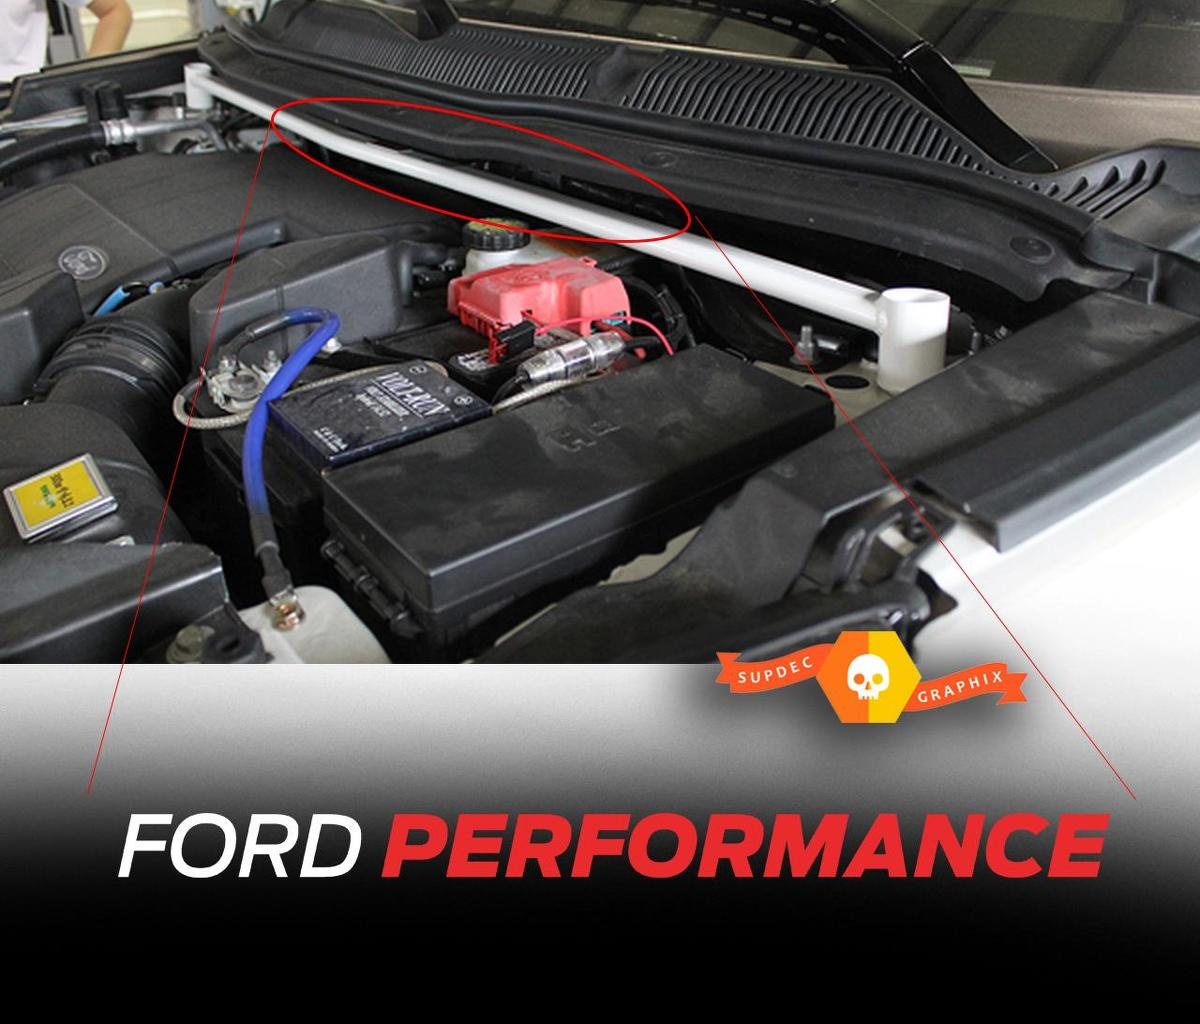 FORD Performance Under Hood Strut Brace Decal Sticker 2 colors Vinyl Graphics